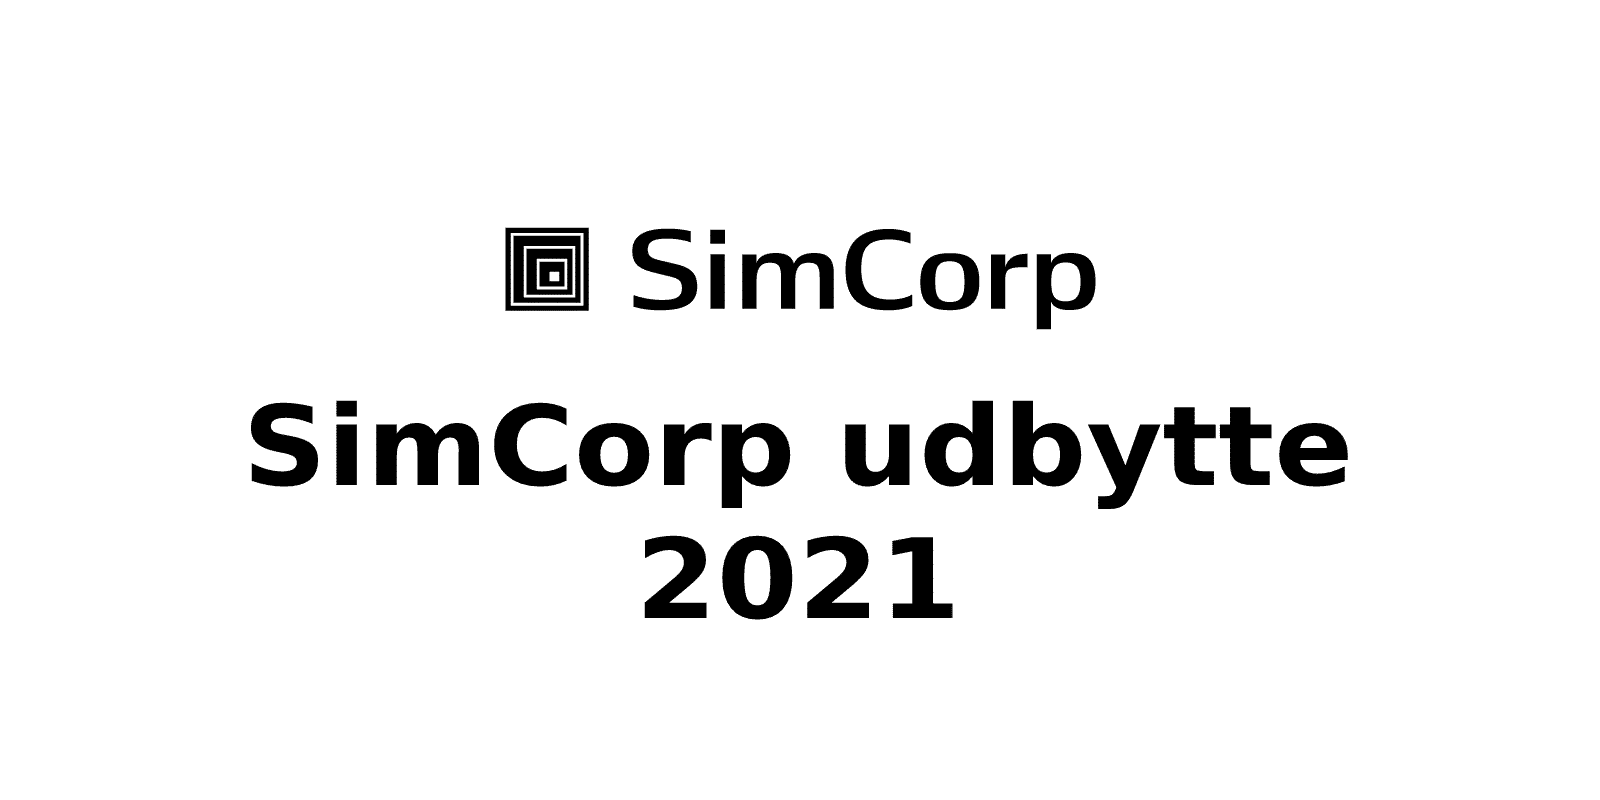 Simcorp udbytte 2021